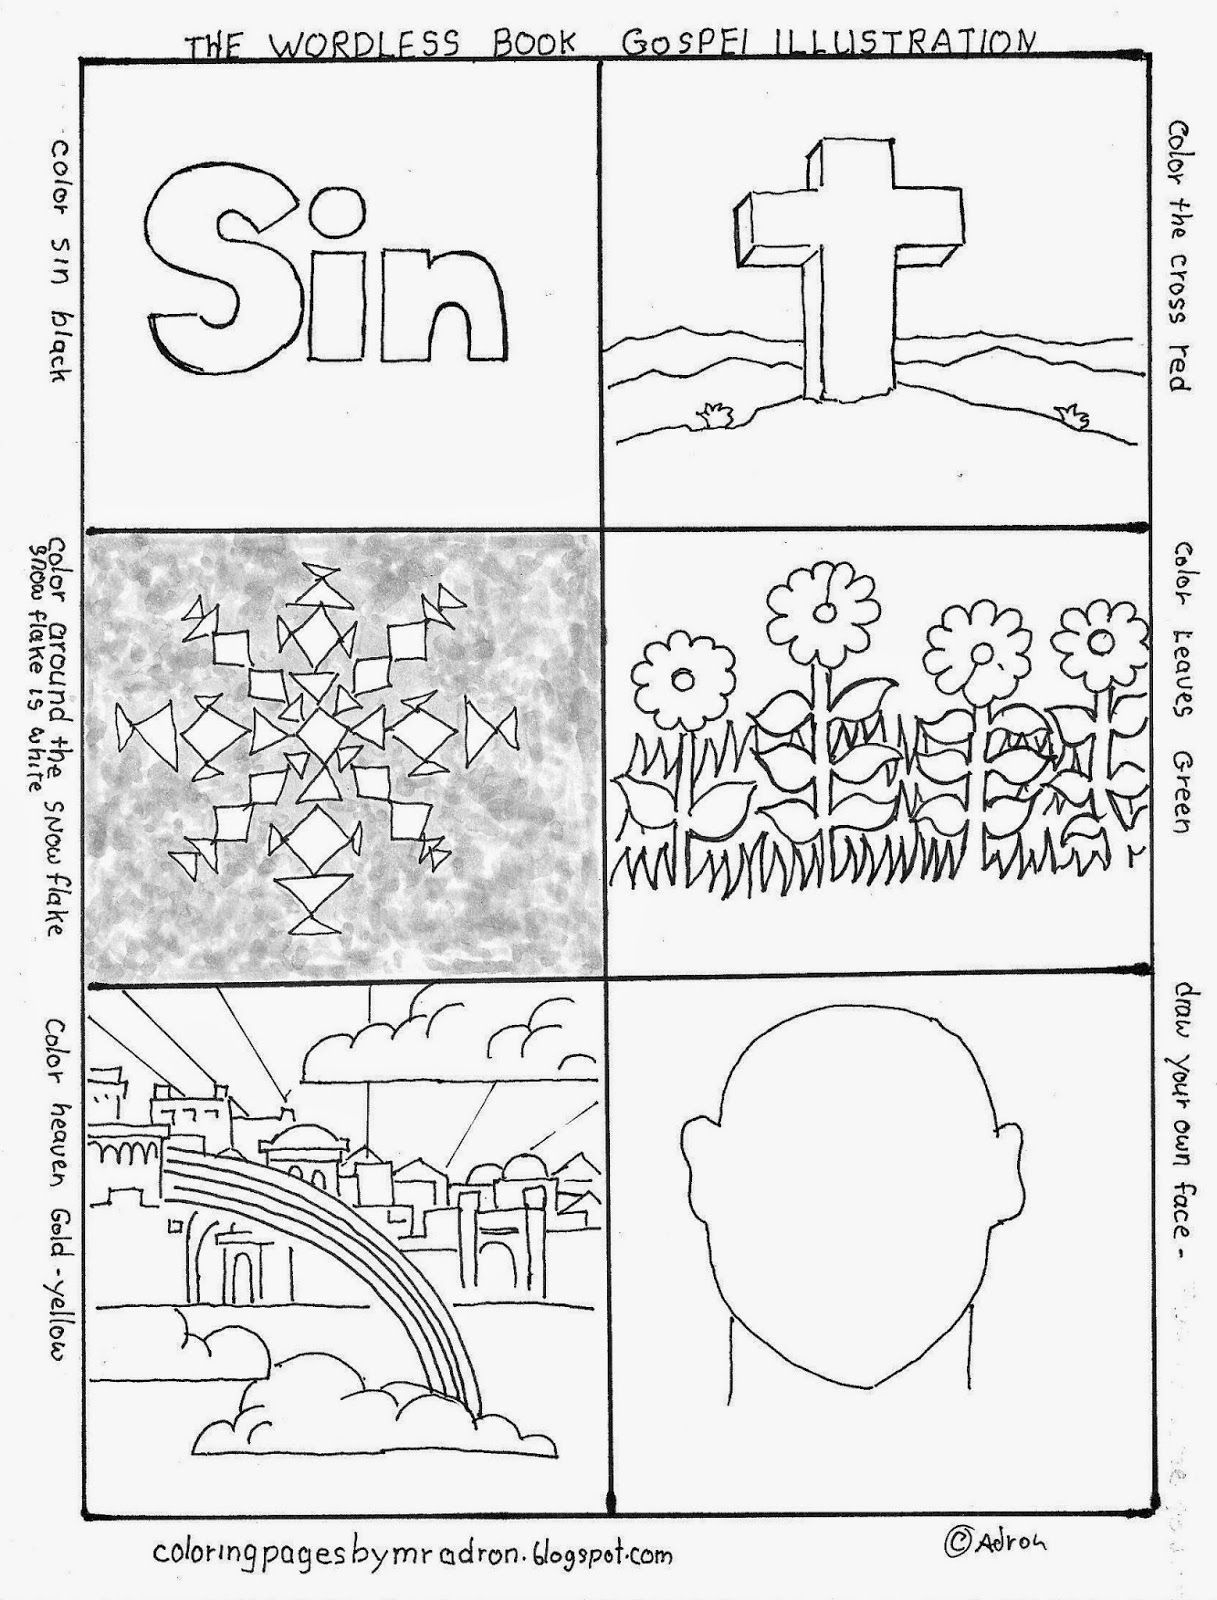 Wordless Book Gospel Coloring Page Free Wordless Book Coloring